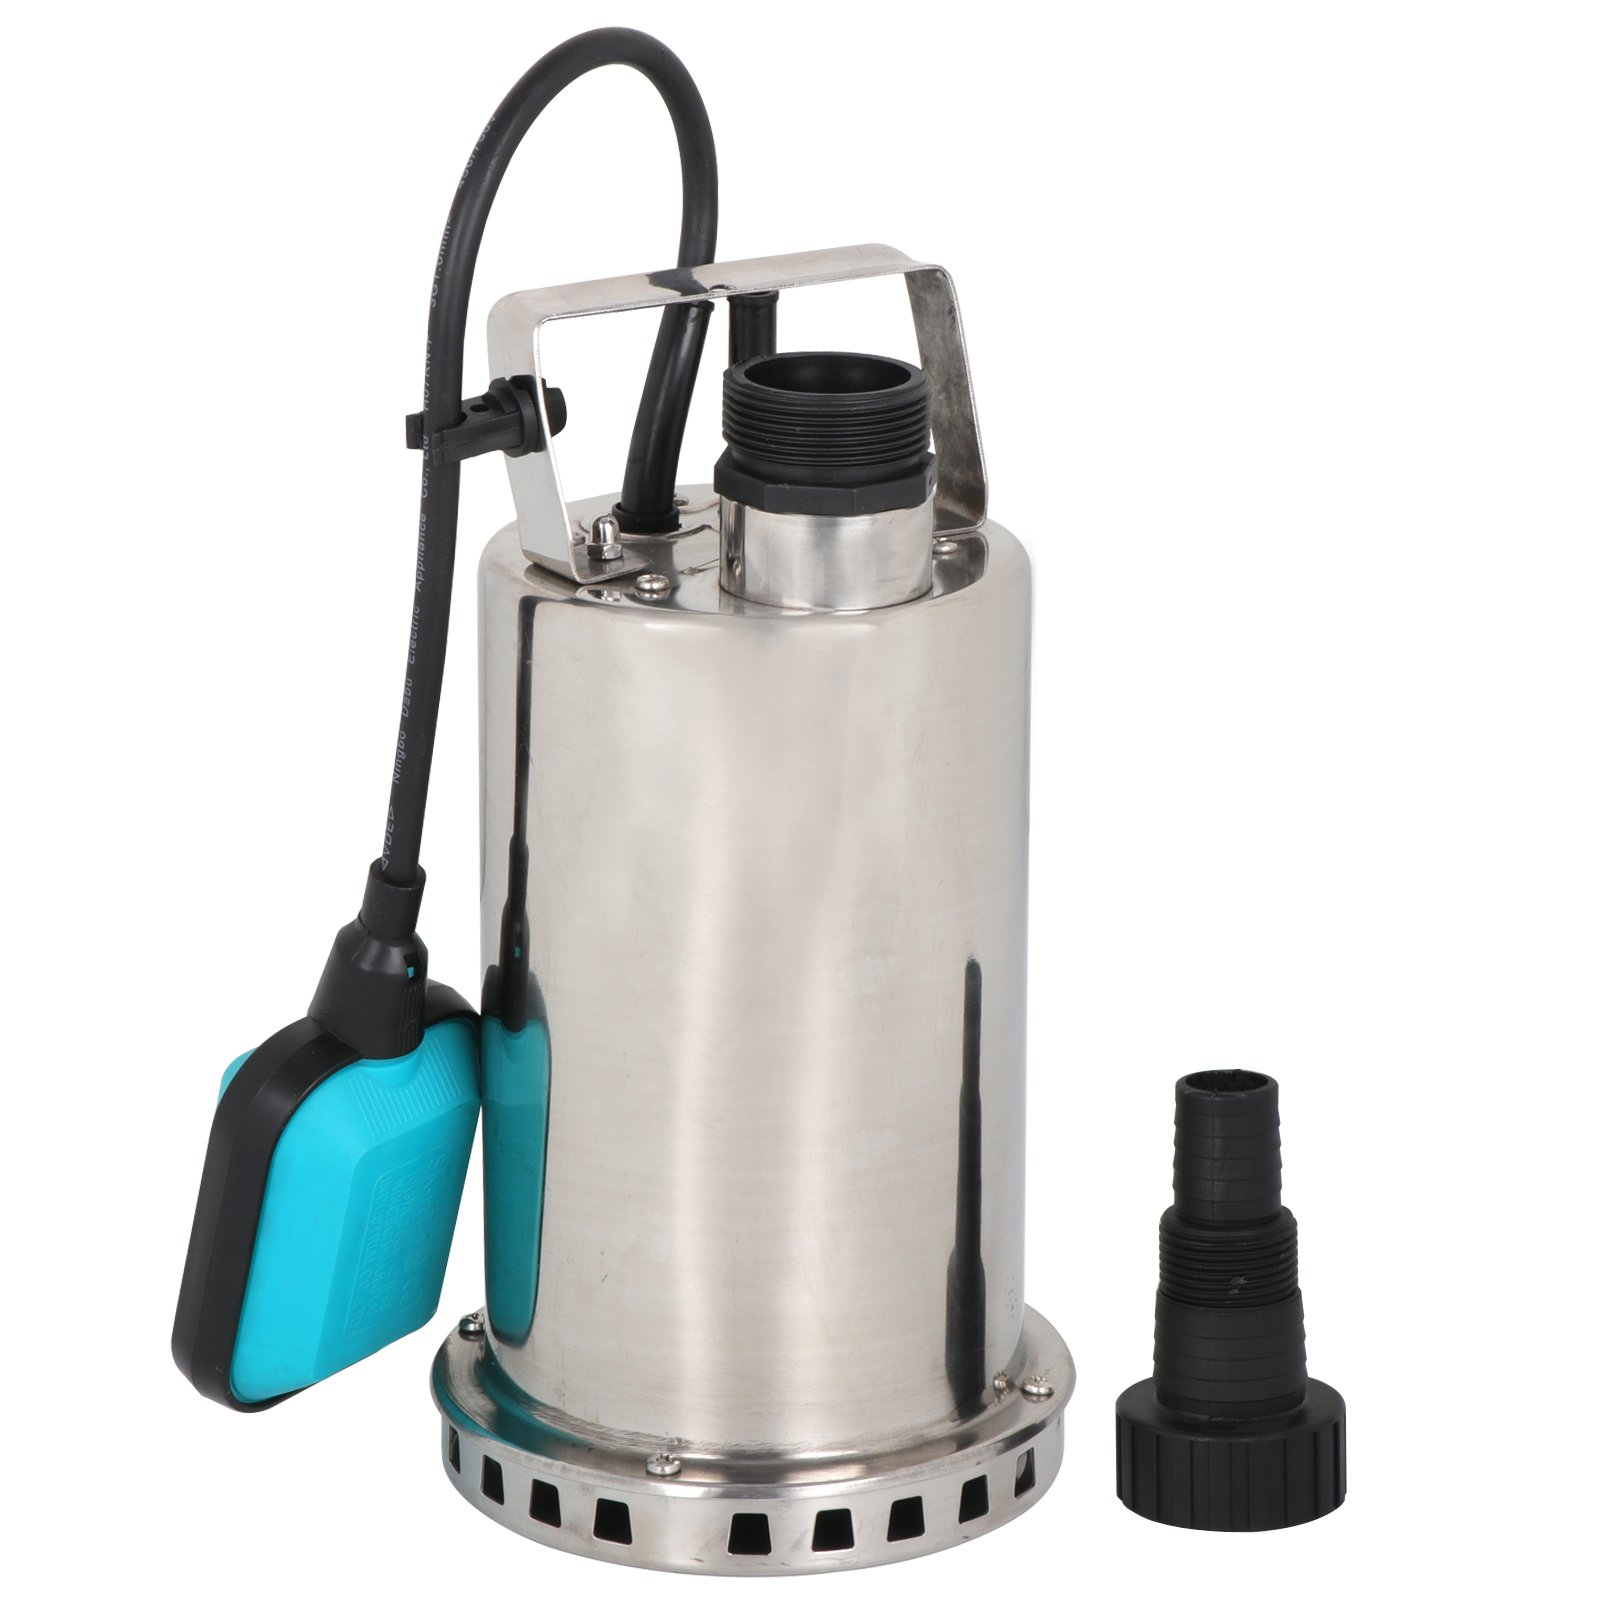 SUPER DEAL Submersible pump Stainless Steel Sump Pump Dirty/Clean Water Pump Pool Utility Pump w/ 26ft Cable and Float Switch